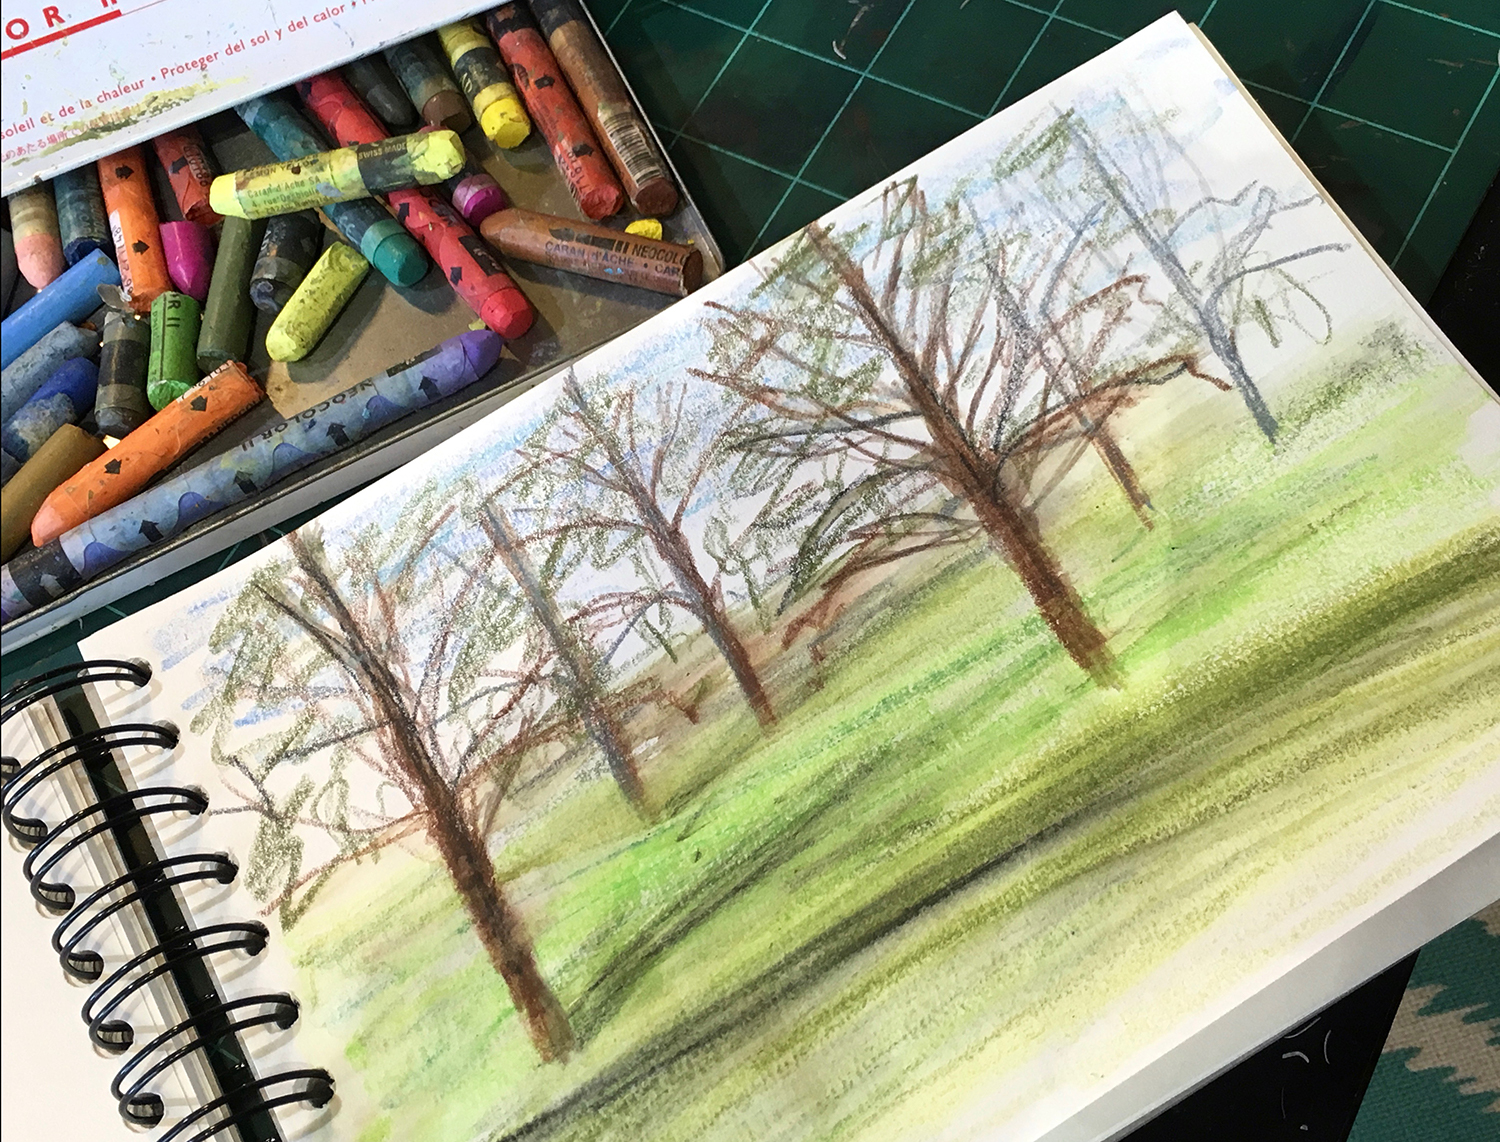 A crayon sketch of trees in the landscape of the Gunby Hall Estate